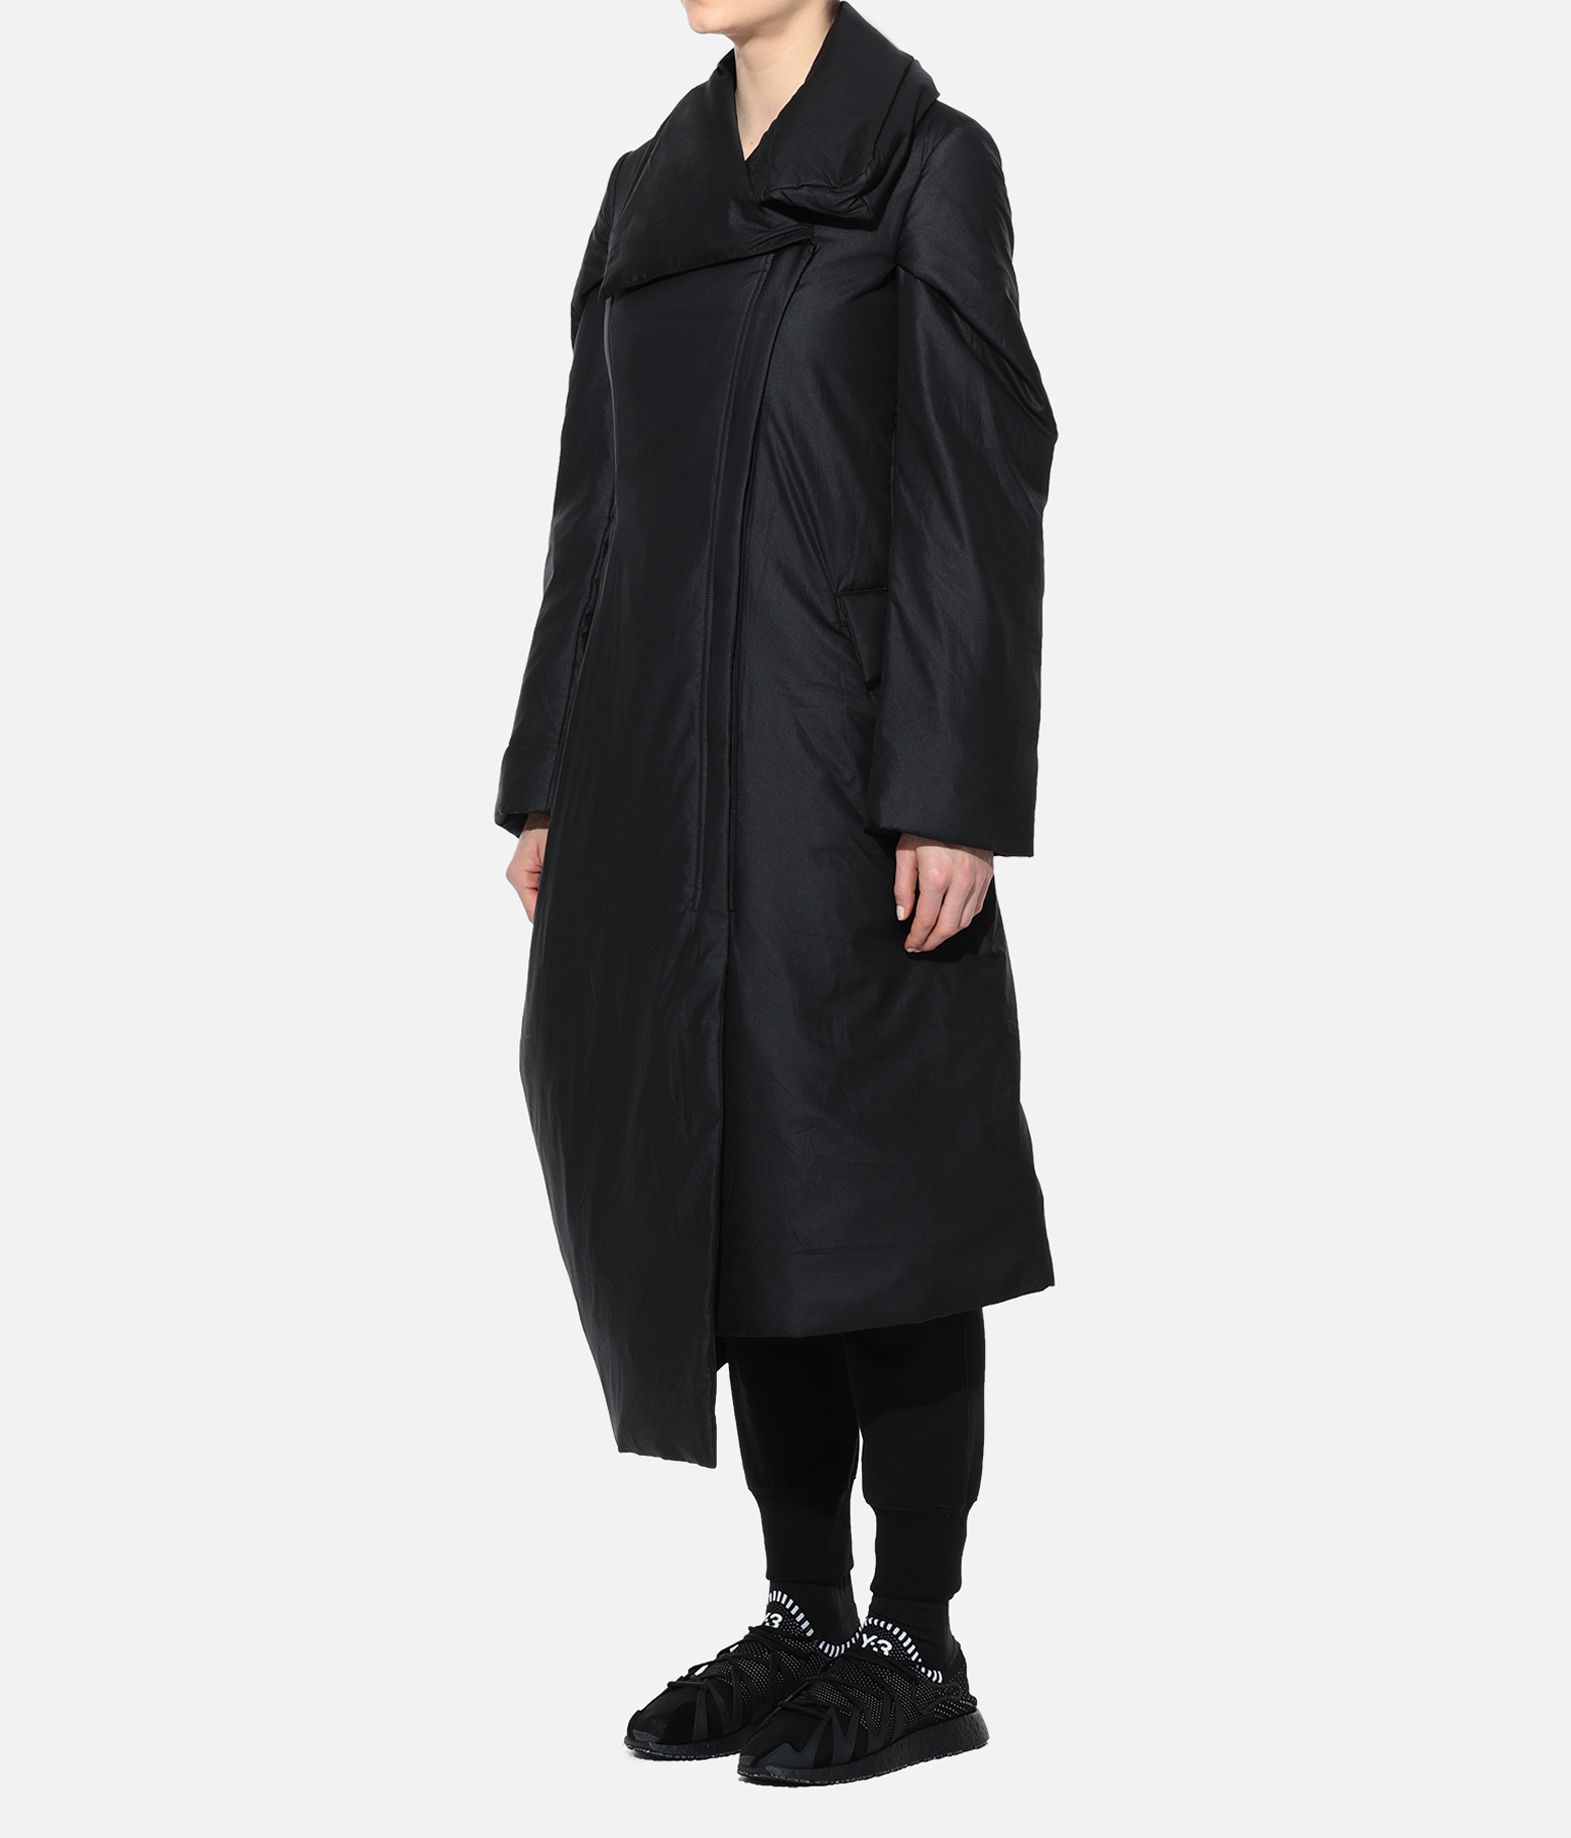 Y-3 Y-3 Adizero Padded Coat Jacket Woman e